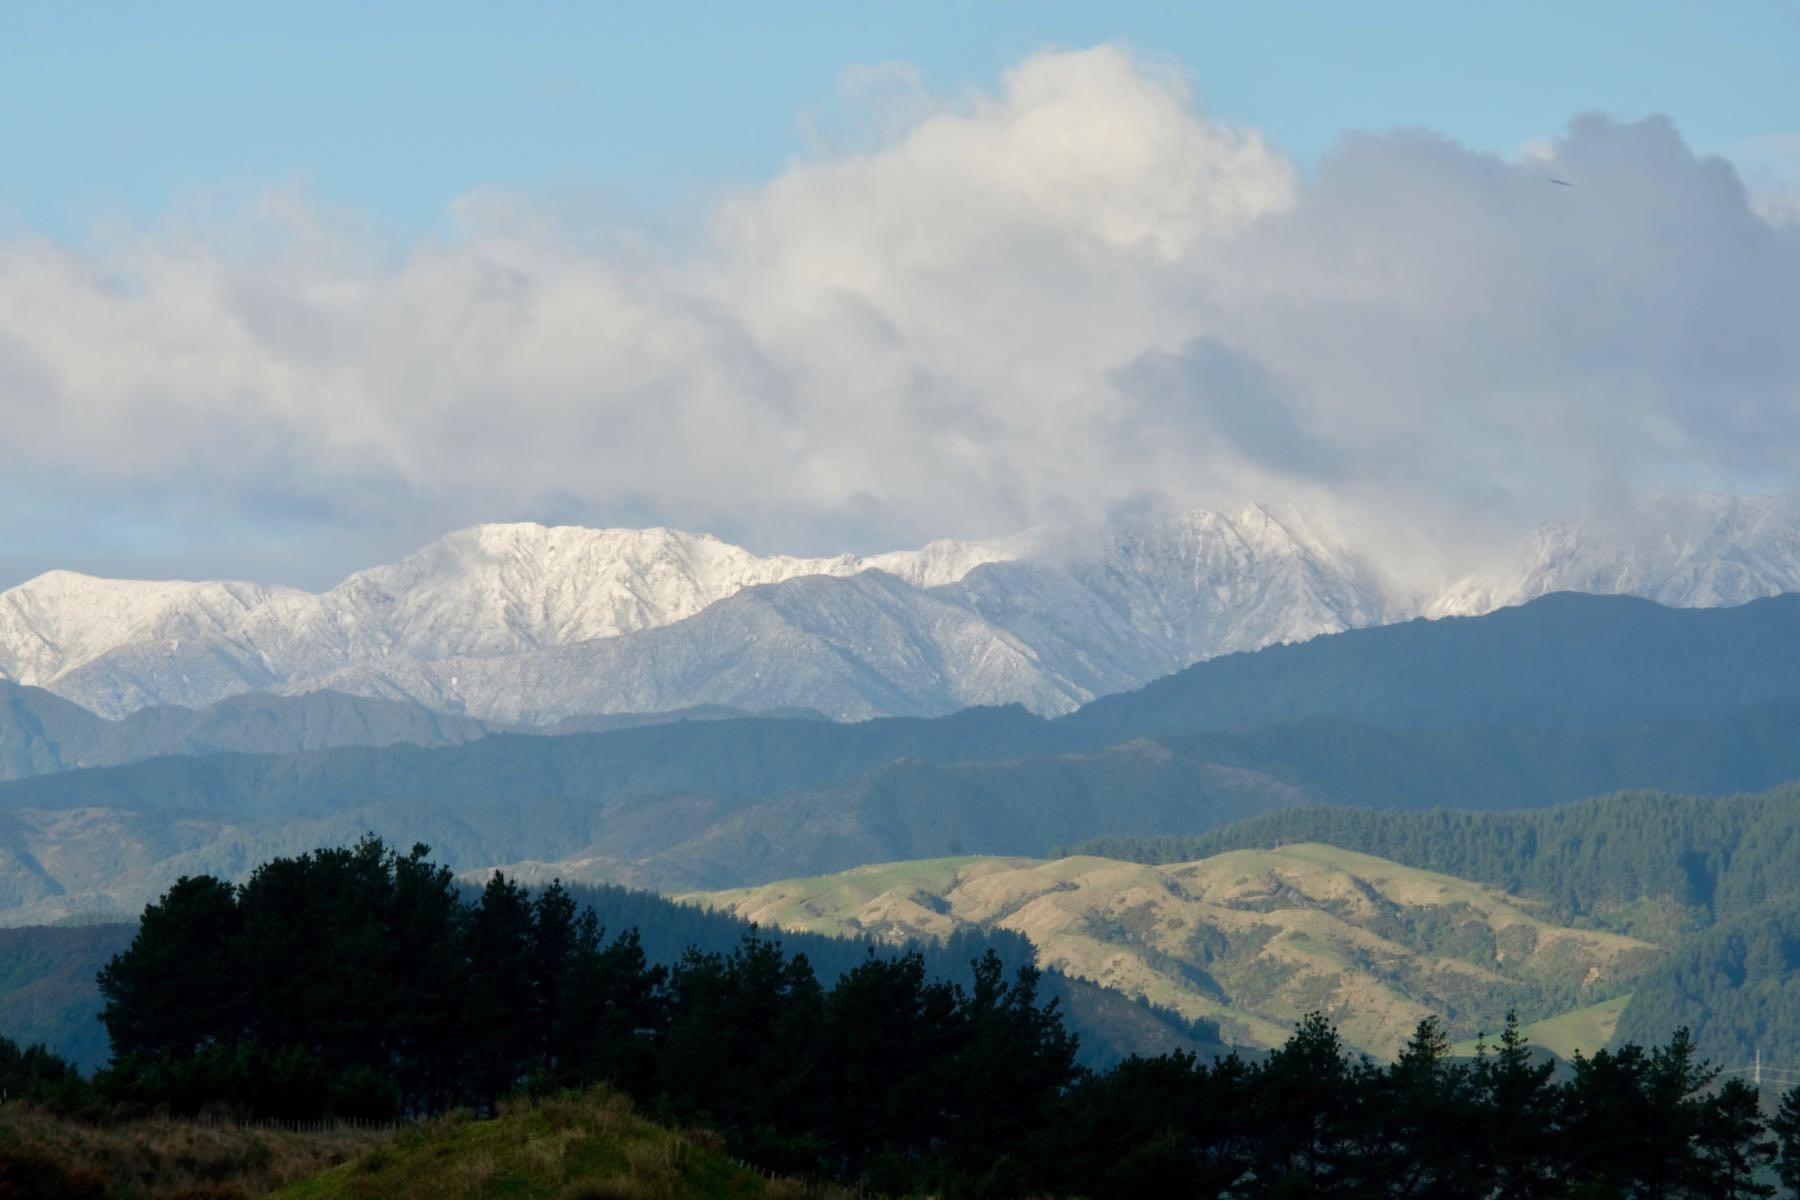 Mountain top with a light dusting of snow.